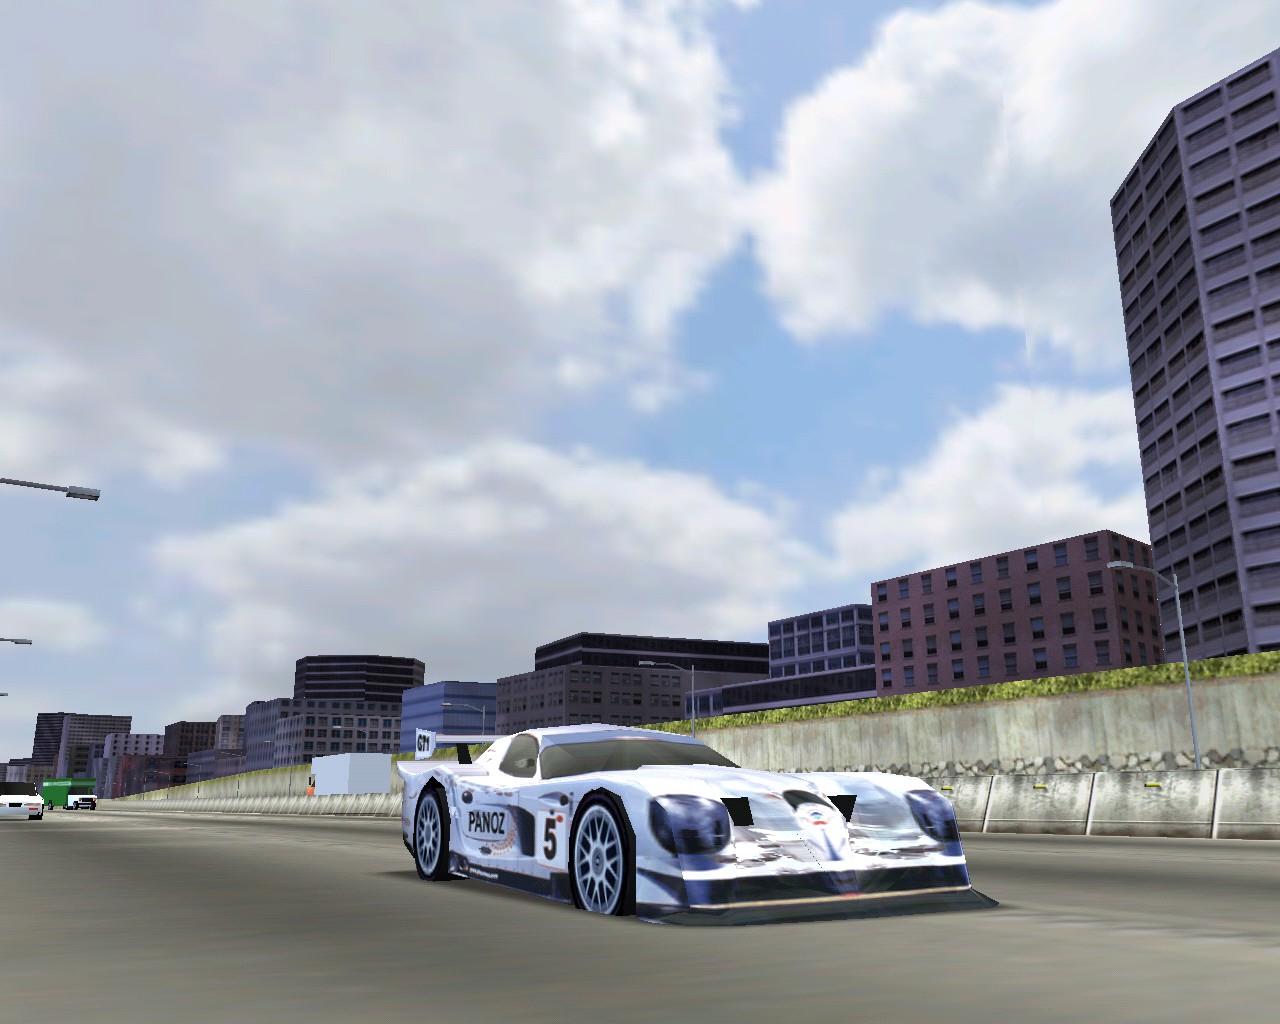 Panoz GTR-1 | Midtown Madness 2 Wiki | FANDOM powered by Wikia